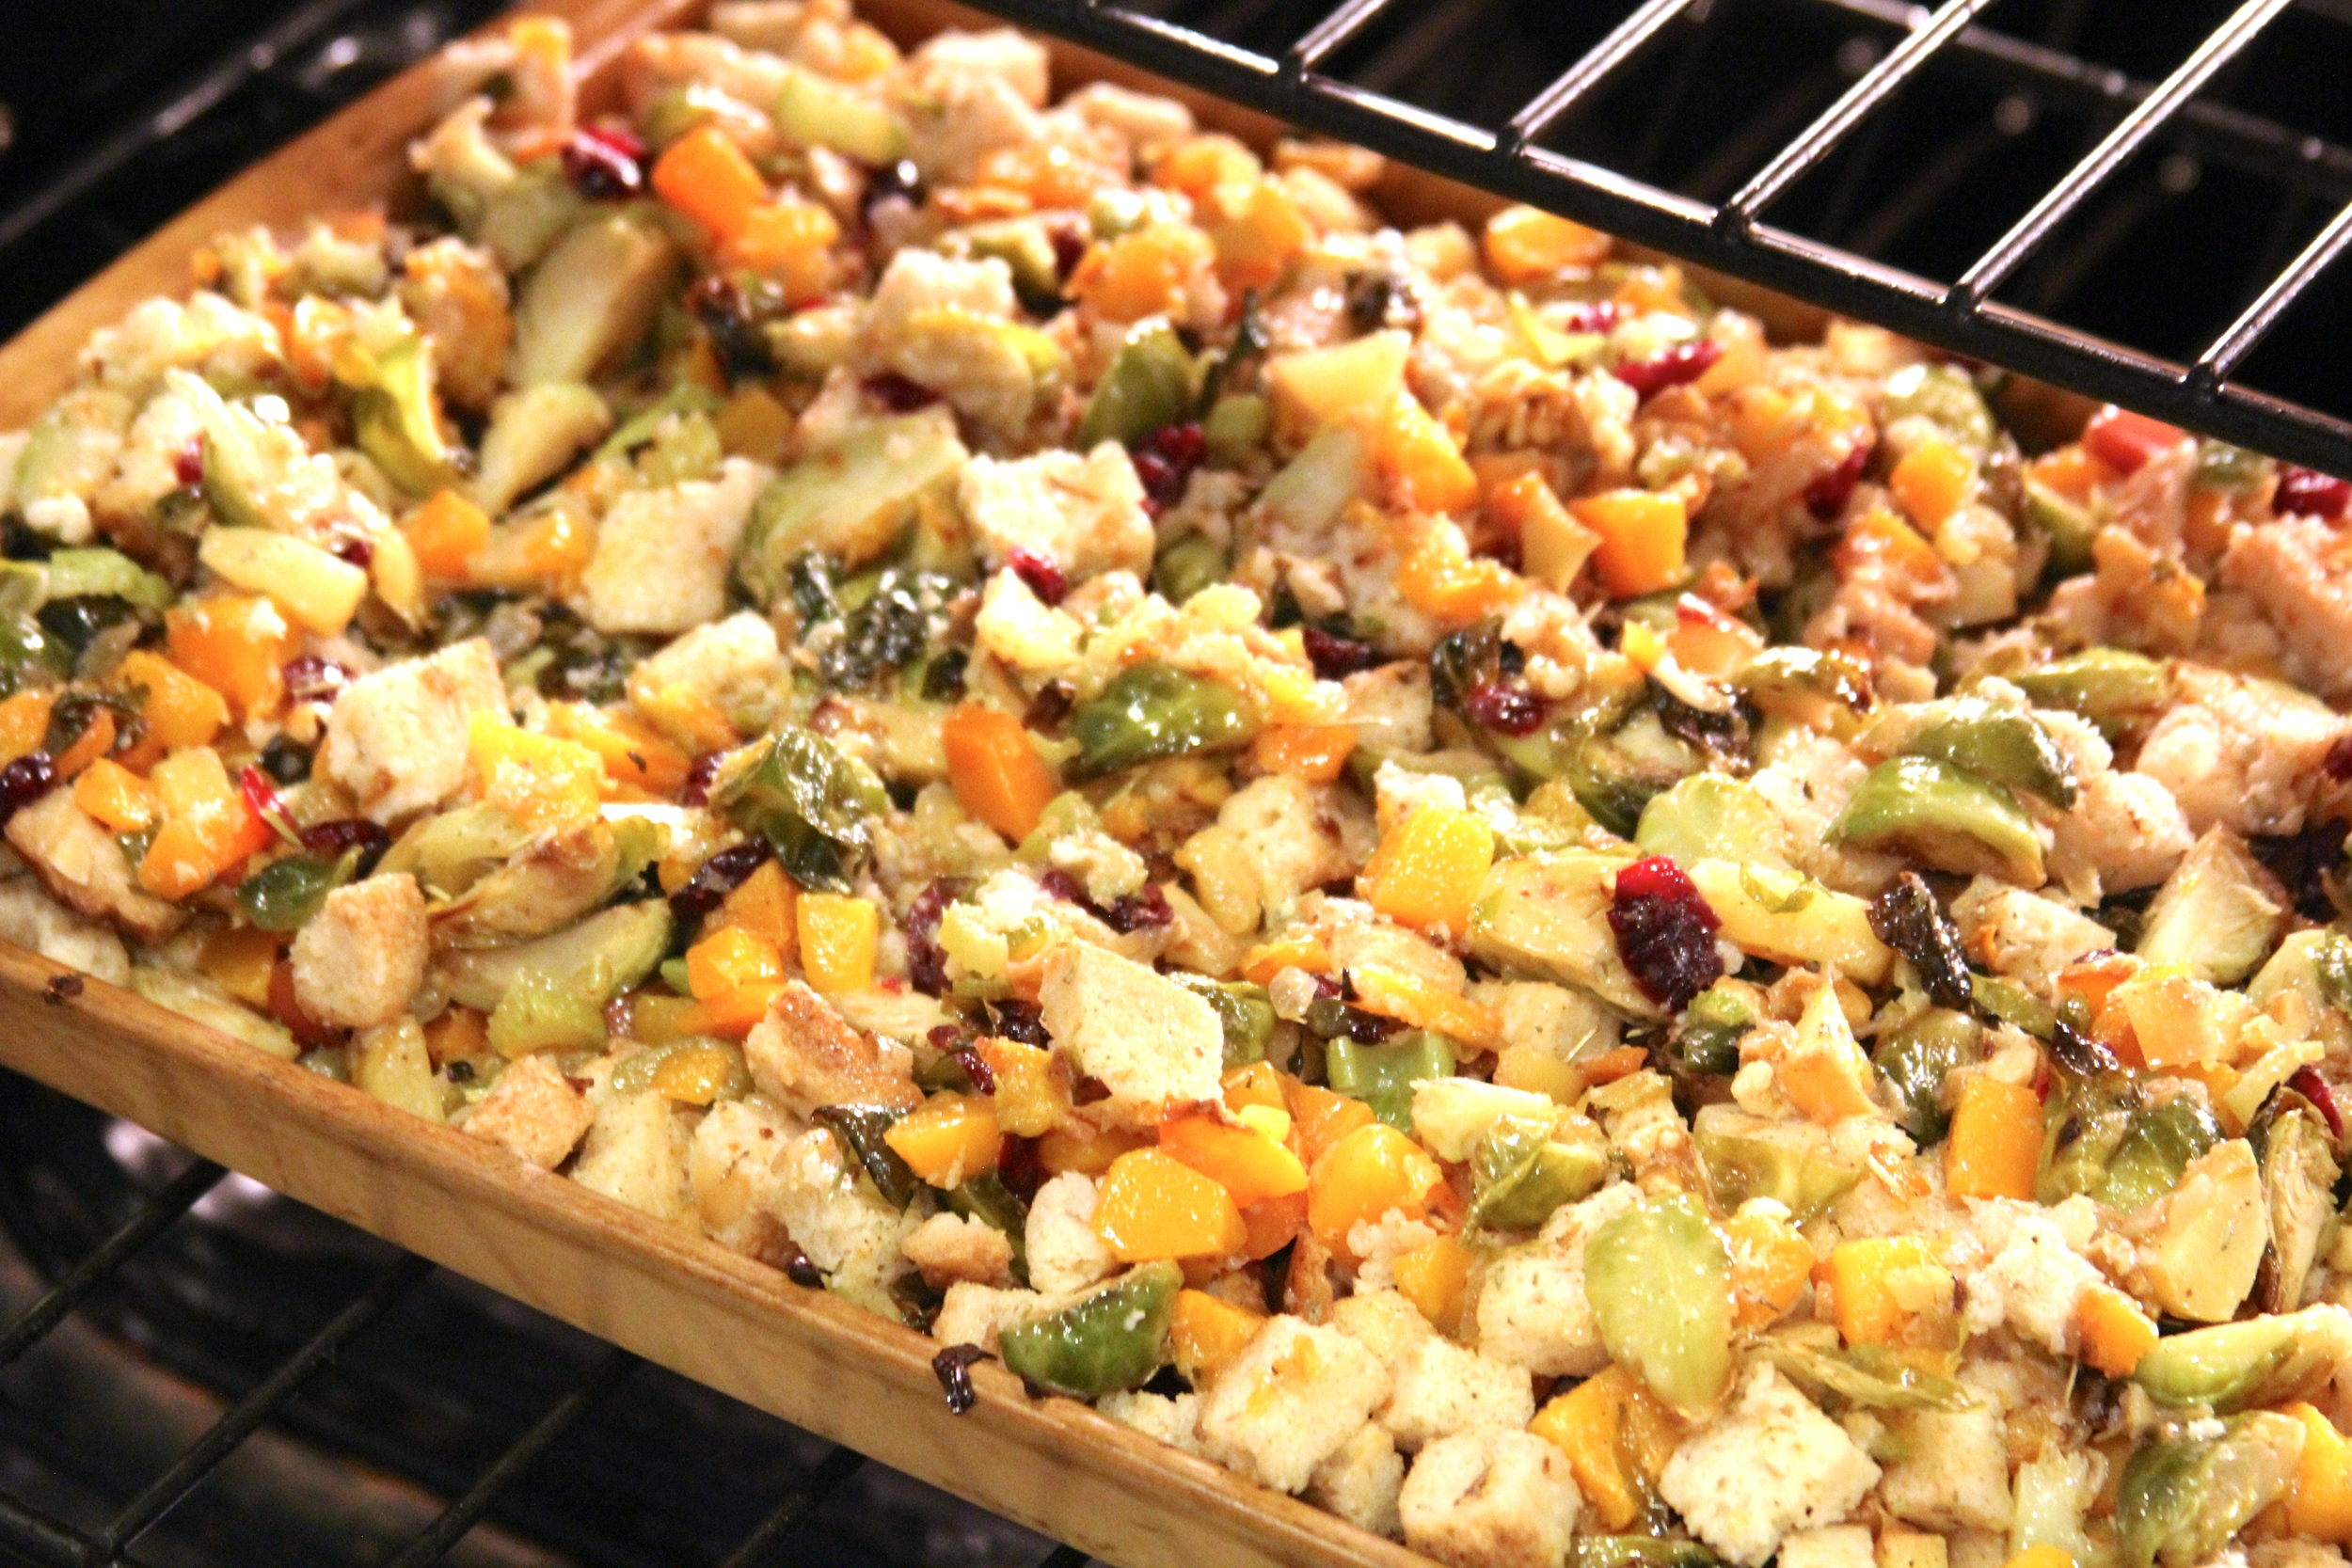 gluten free stuffing with brussels sprouts, butternut squash, and apples